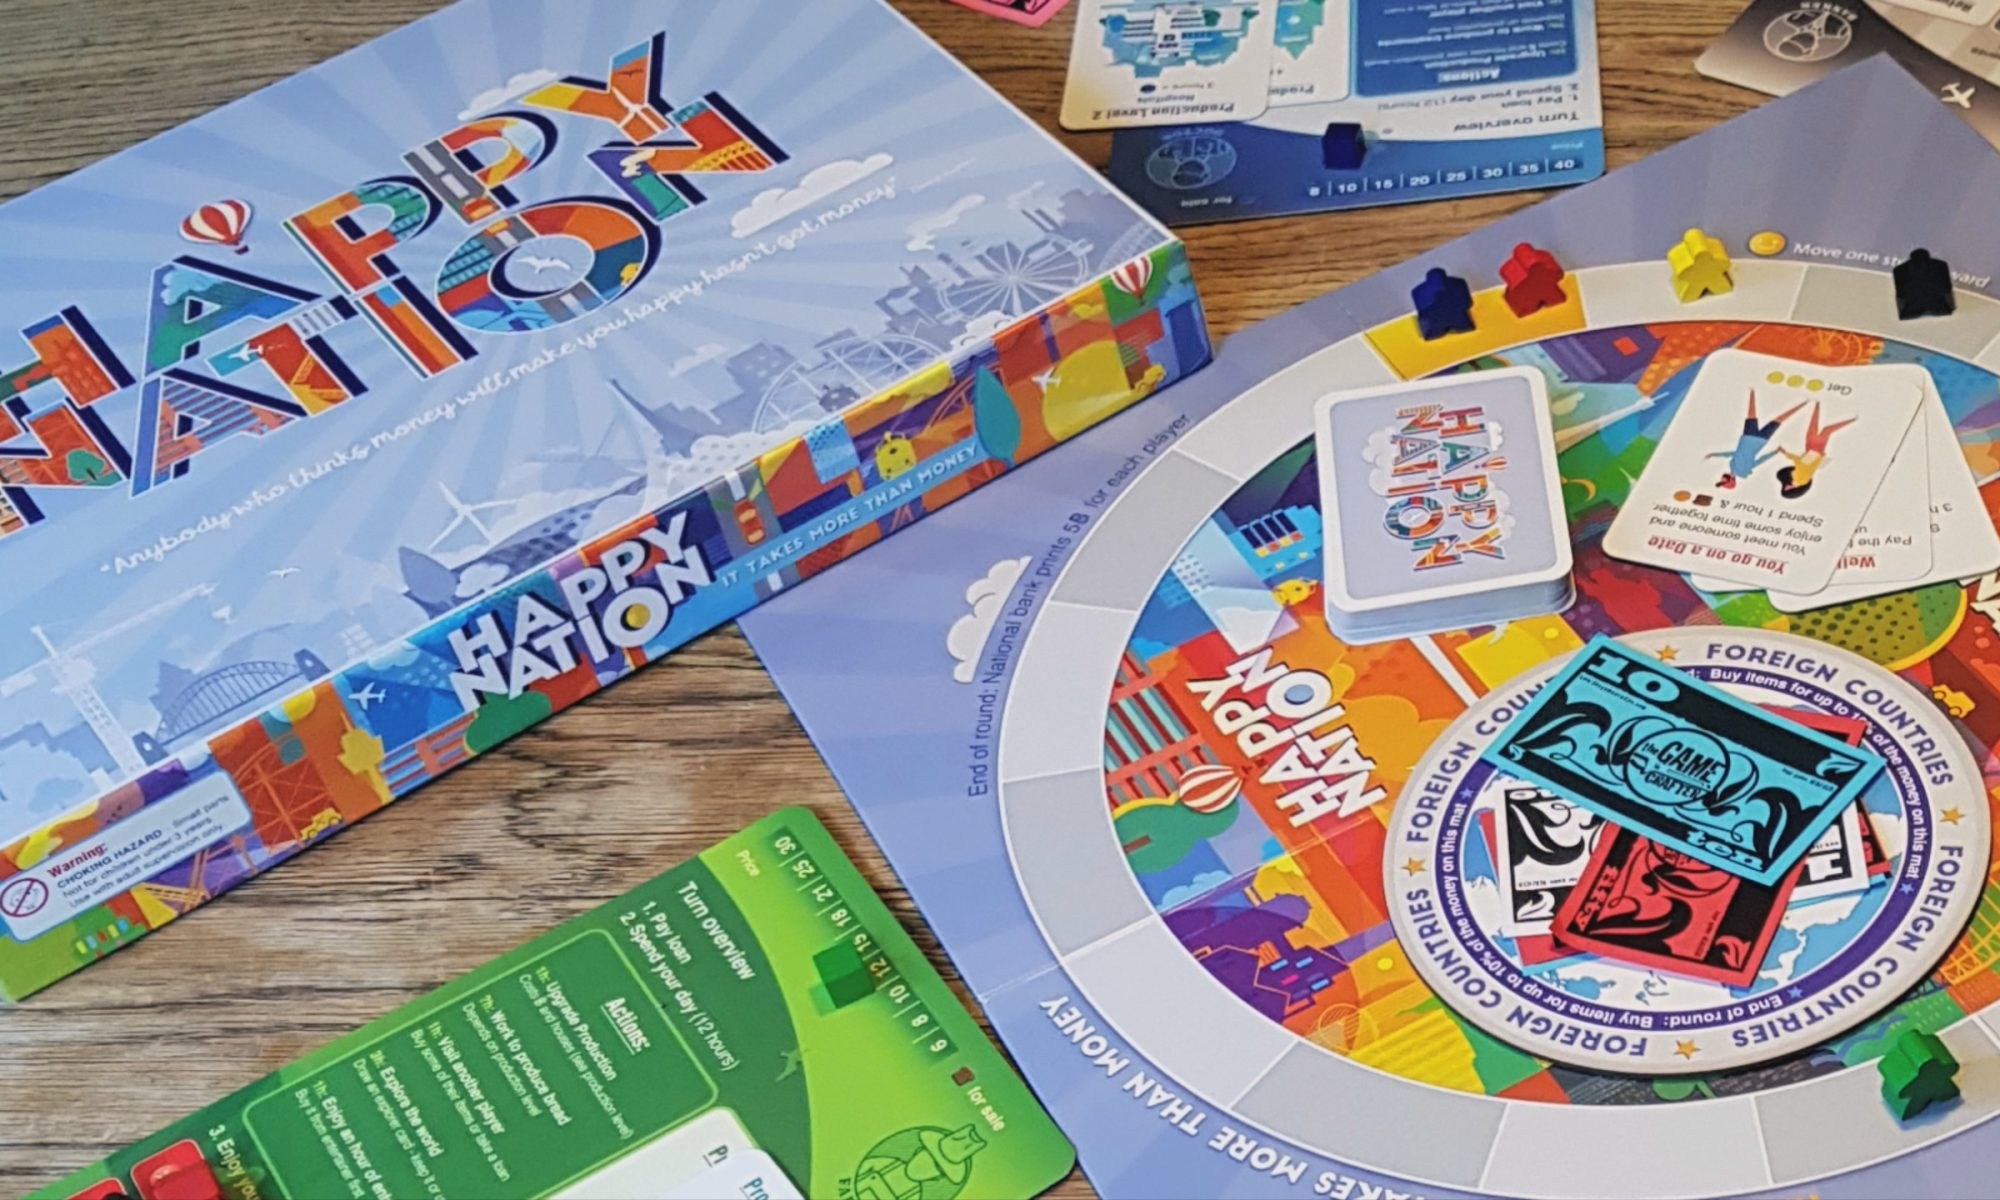 Happy Nation - The Board Game